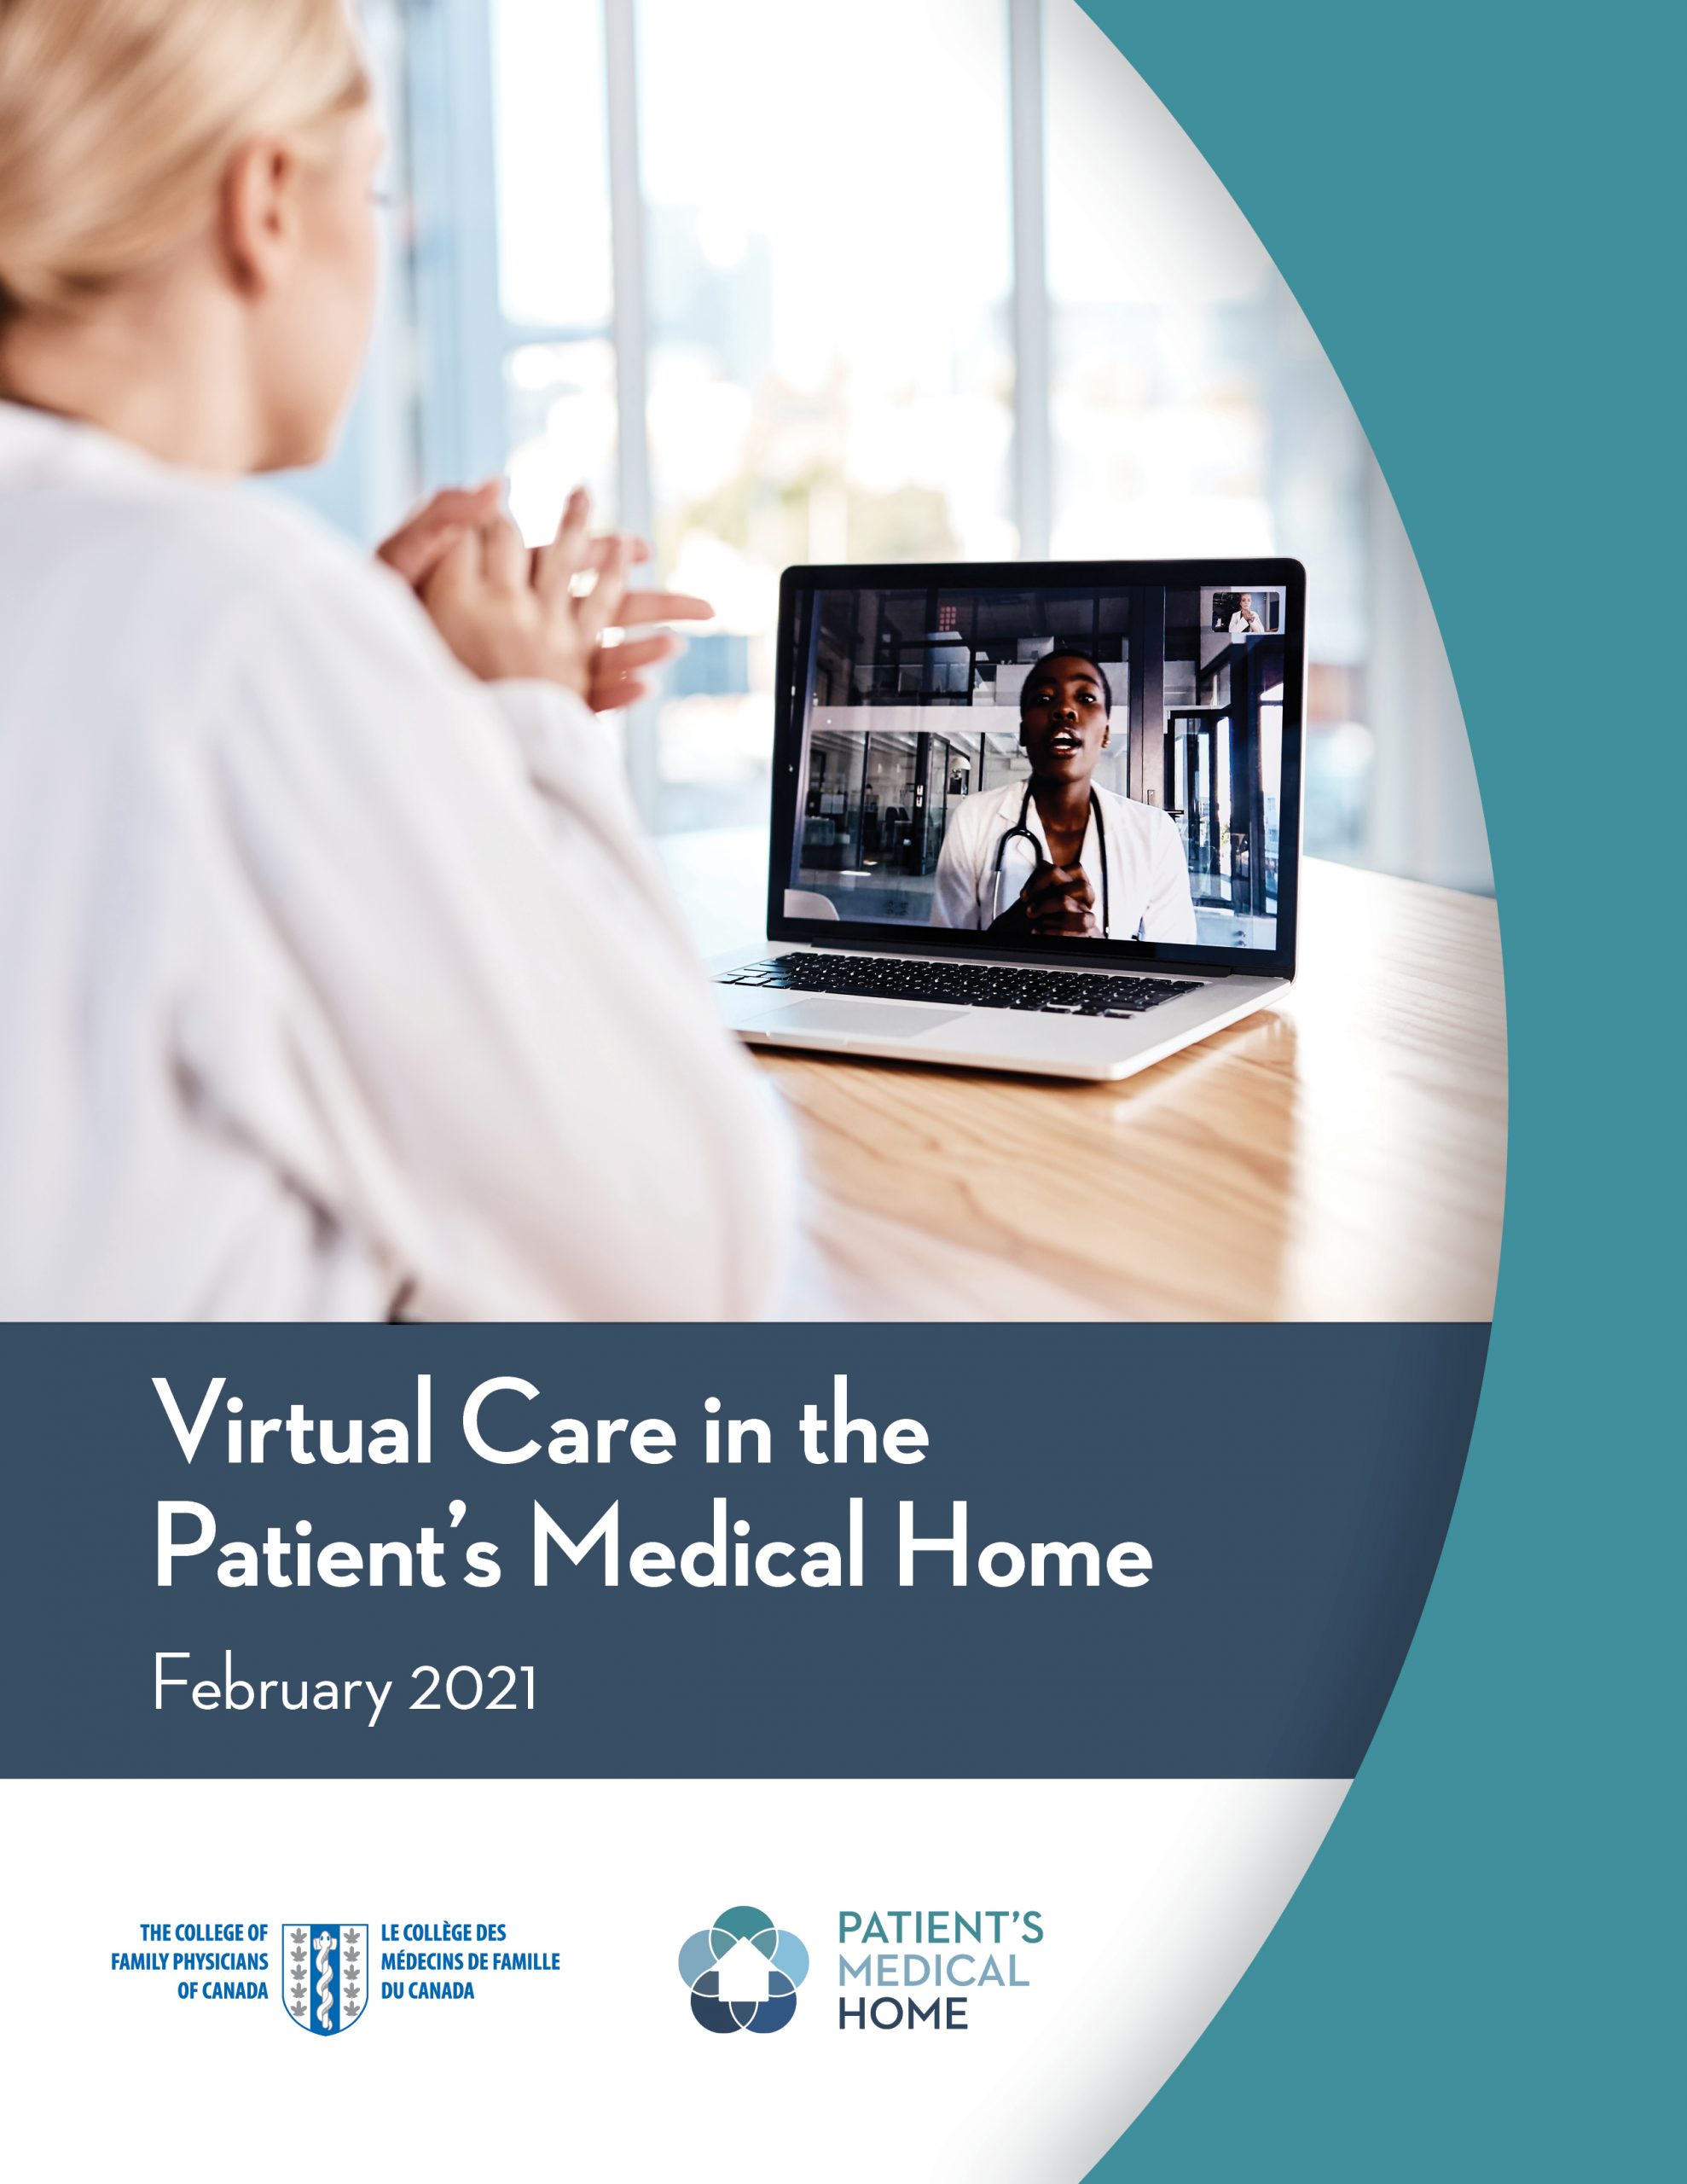 Virtual Care in the Patient's Medical Home